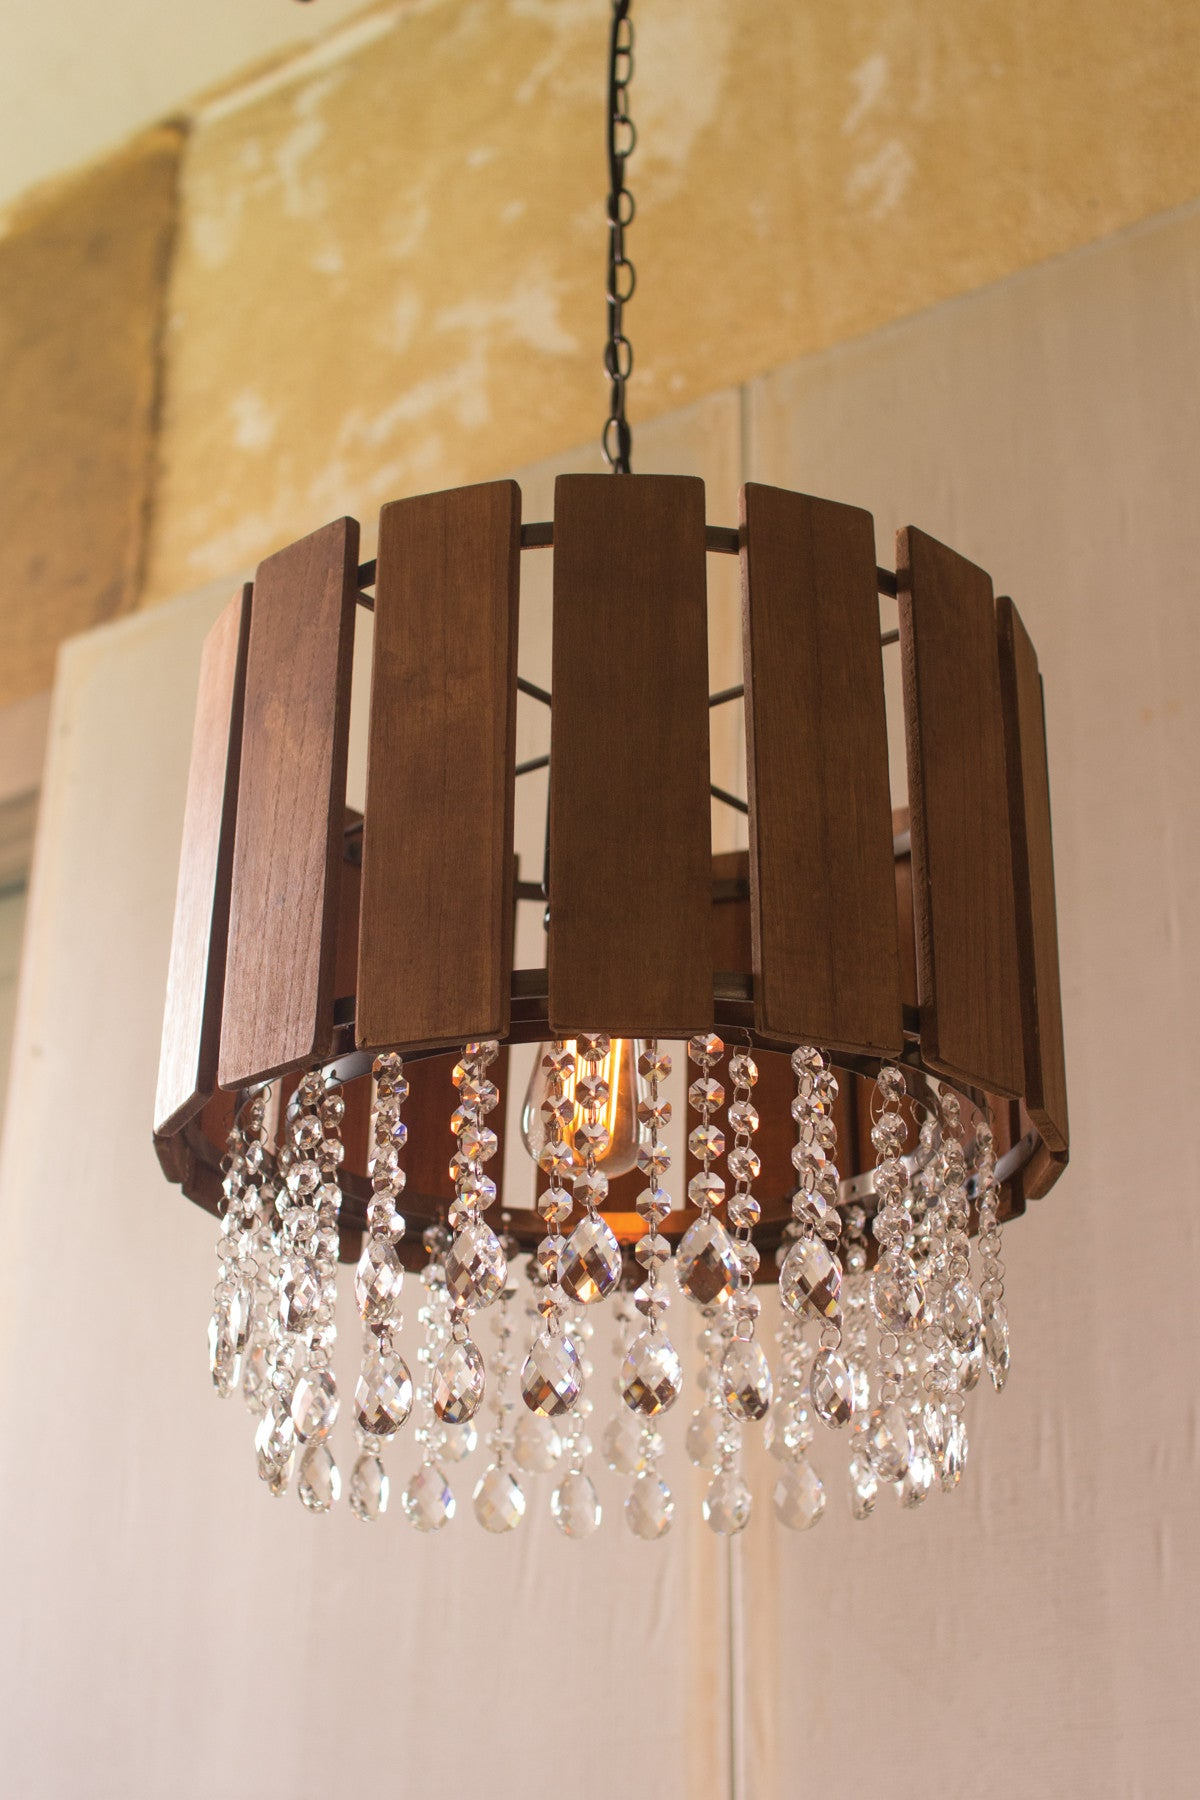 SLAT WOOD PENDANT LIGHT WITH GLASS GEMS